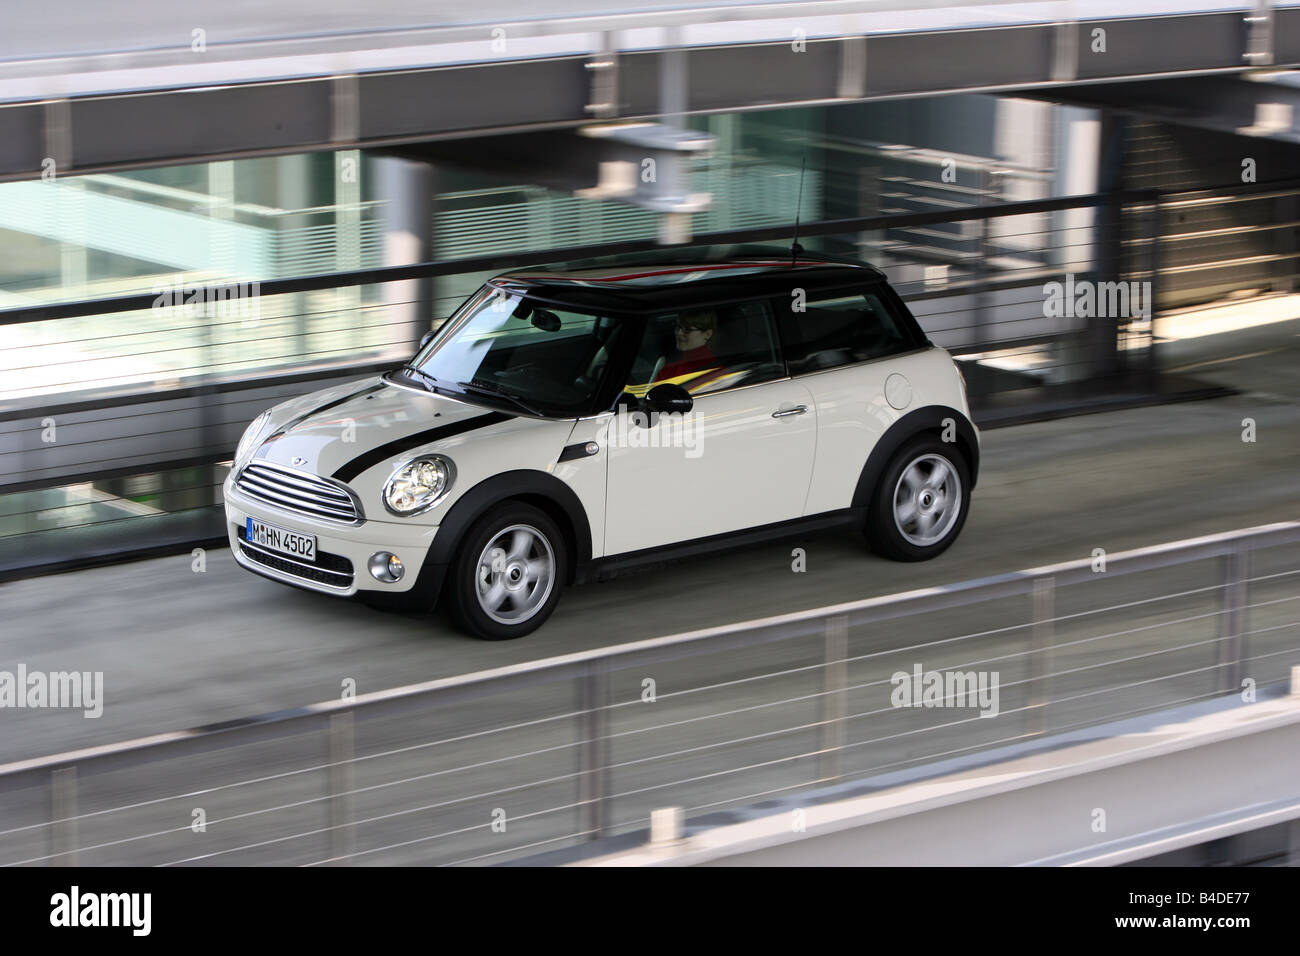 Garage Mini Stock Photos Garage Mini Stock Images Alamy